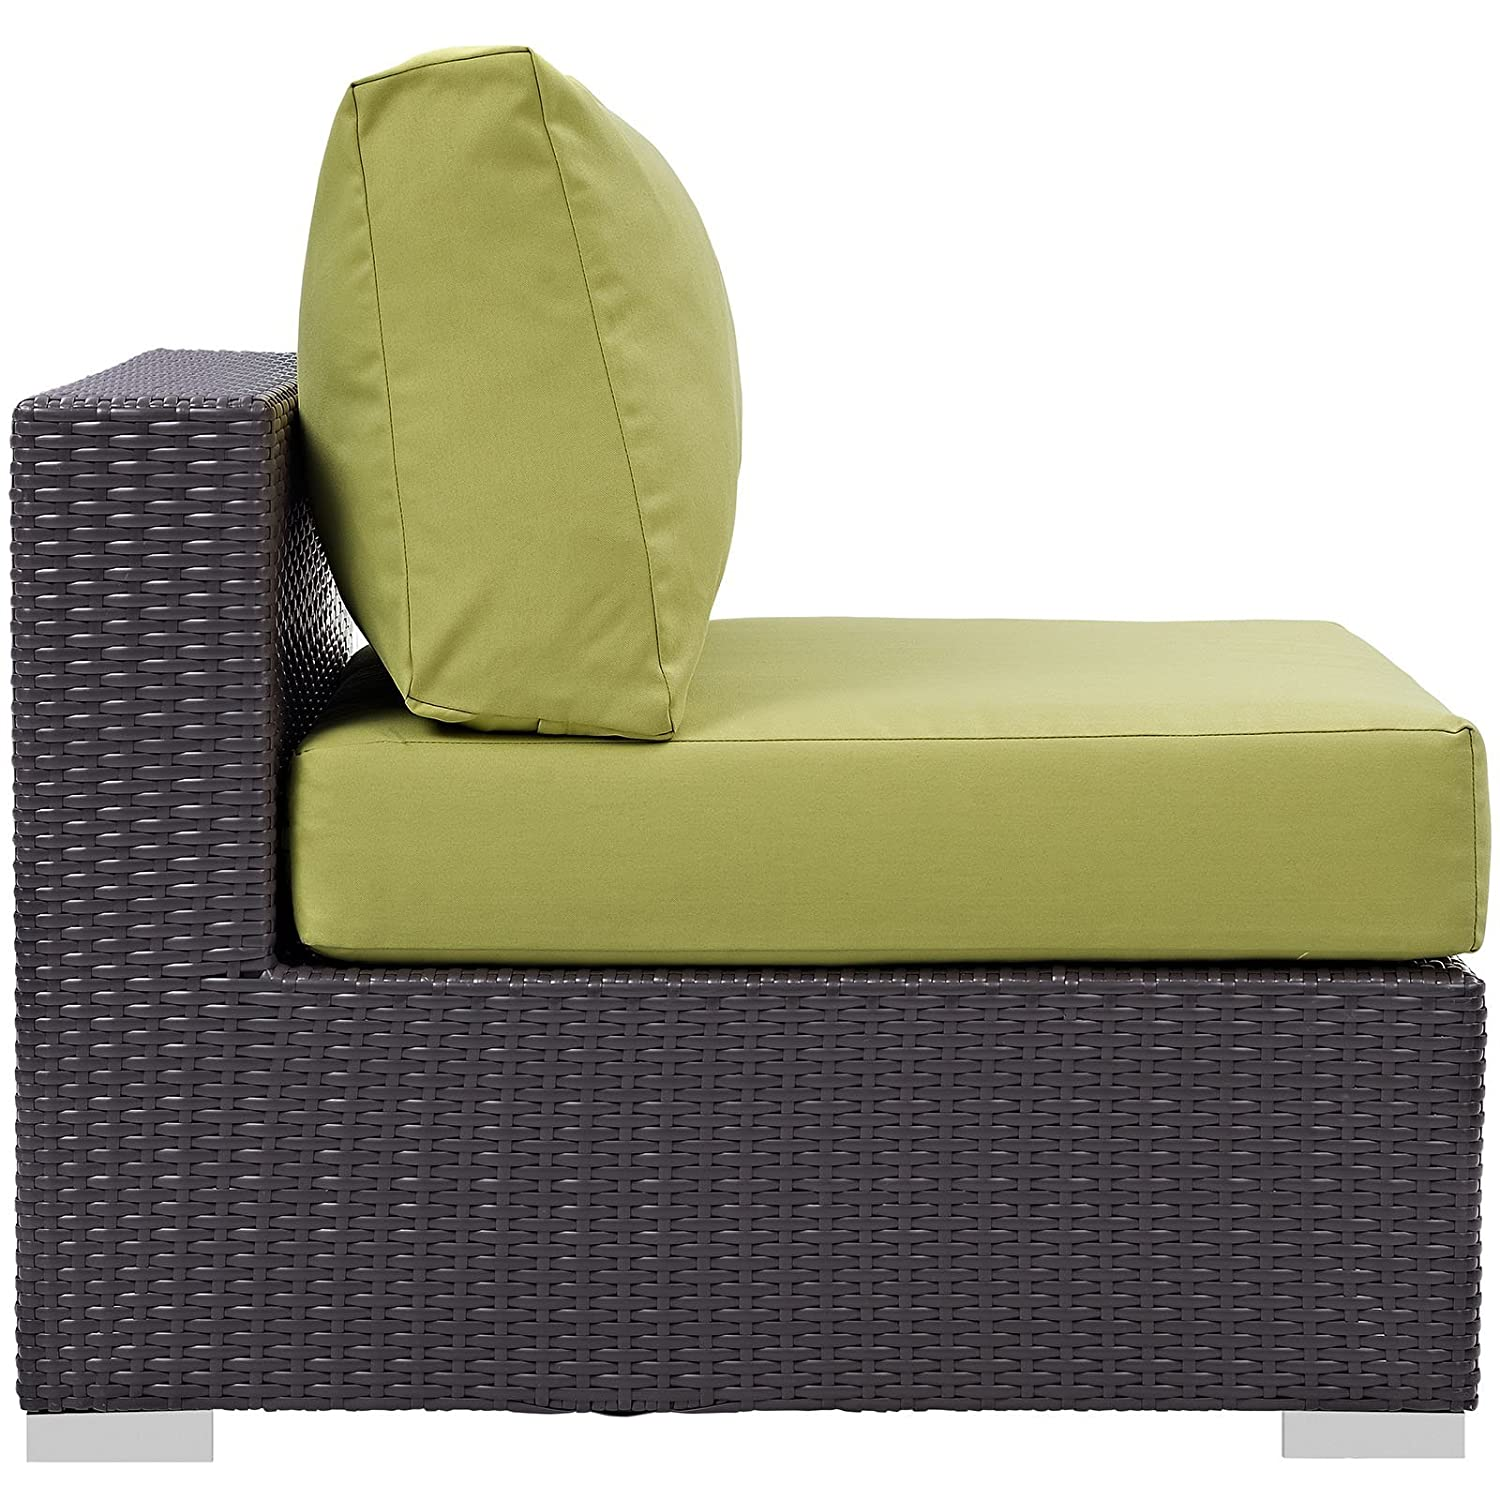 Modway Convene Wicker Rattan Outdoor Patio Sectional Sofa Armless Chair in Espresso Peridot